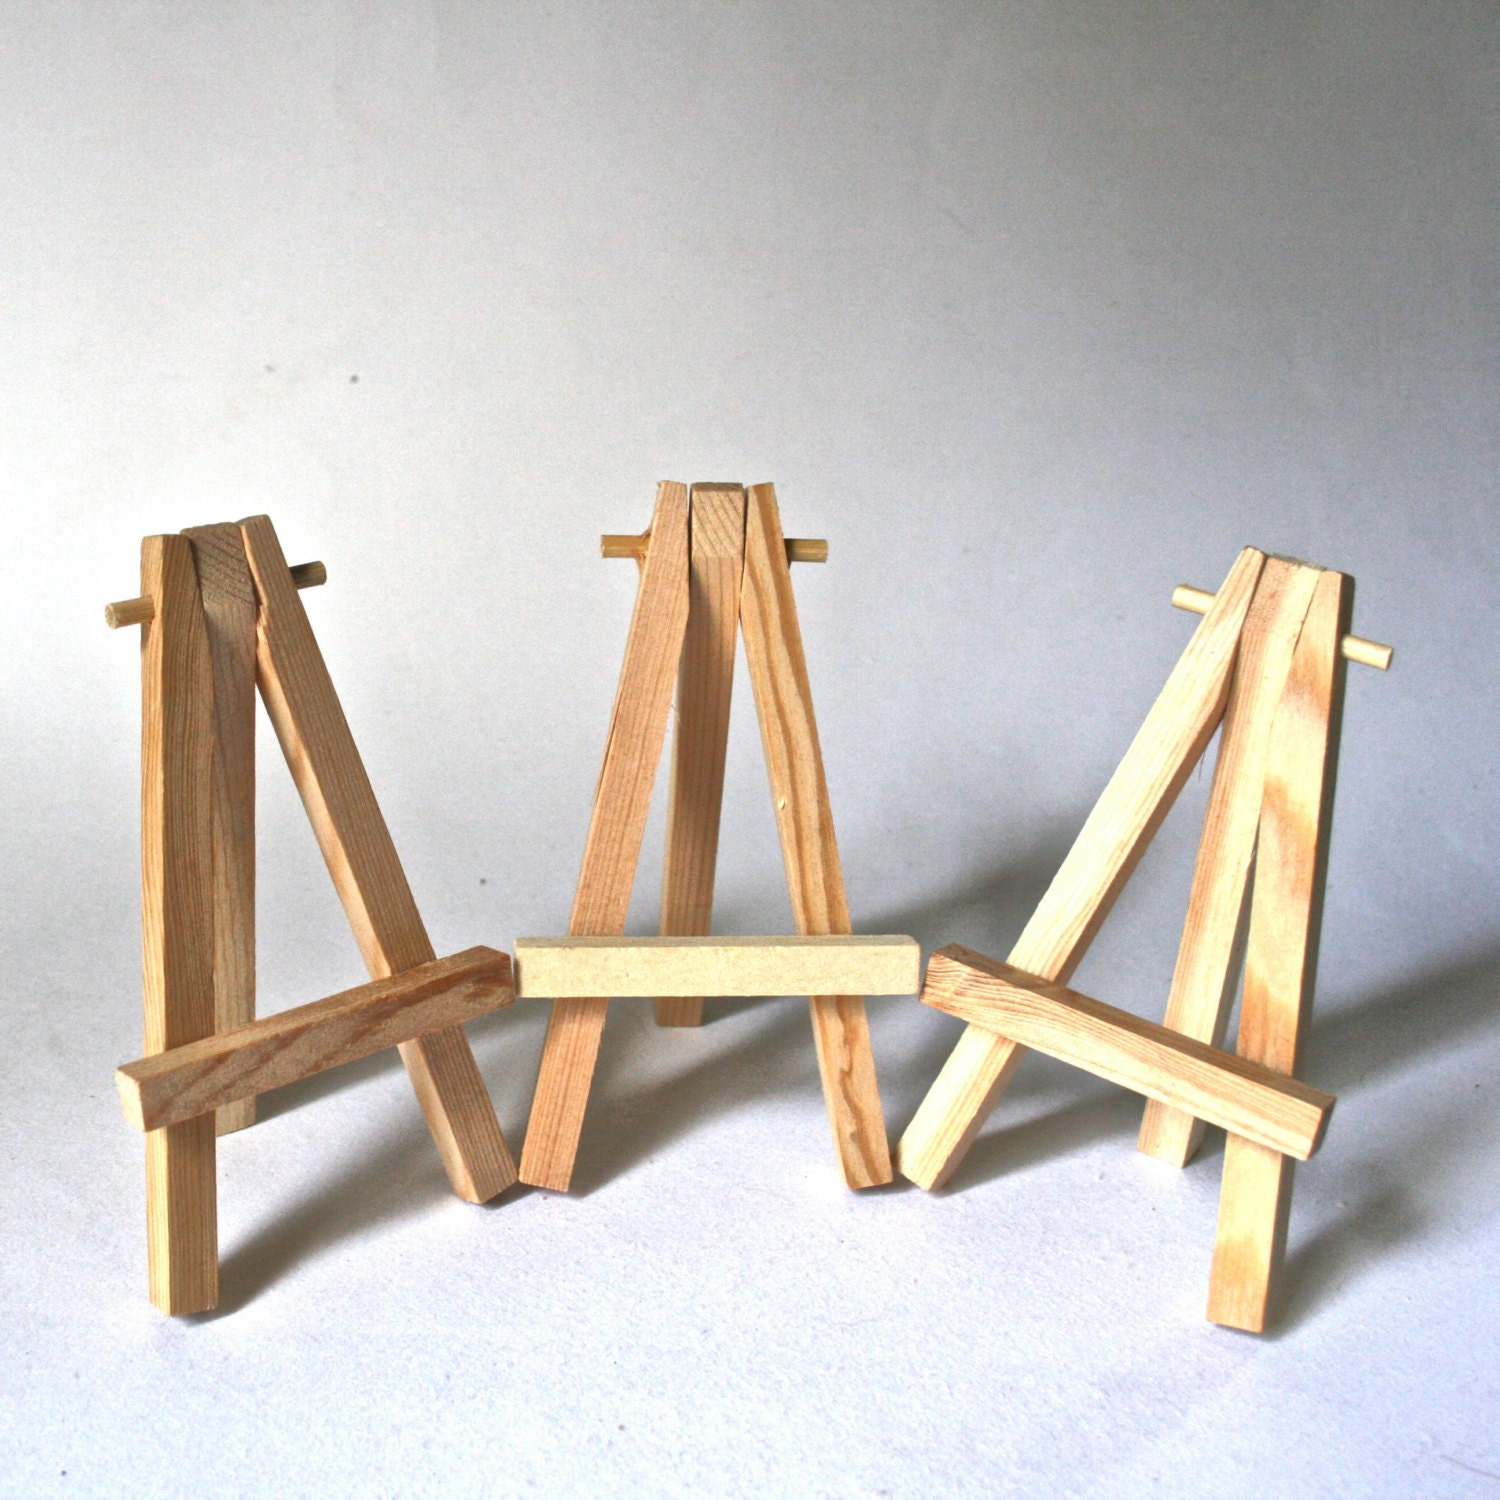 Three Small Wooden Easels for Display of Tiny Paintings